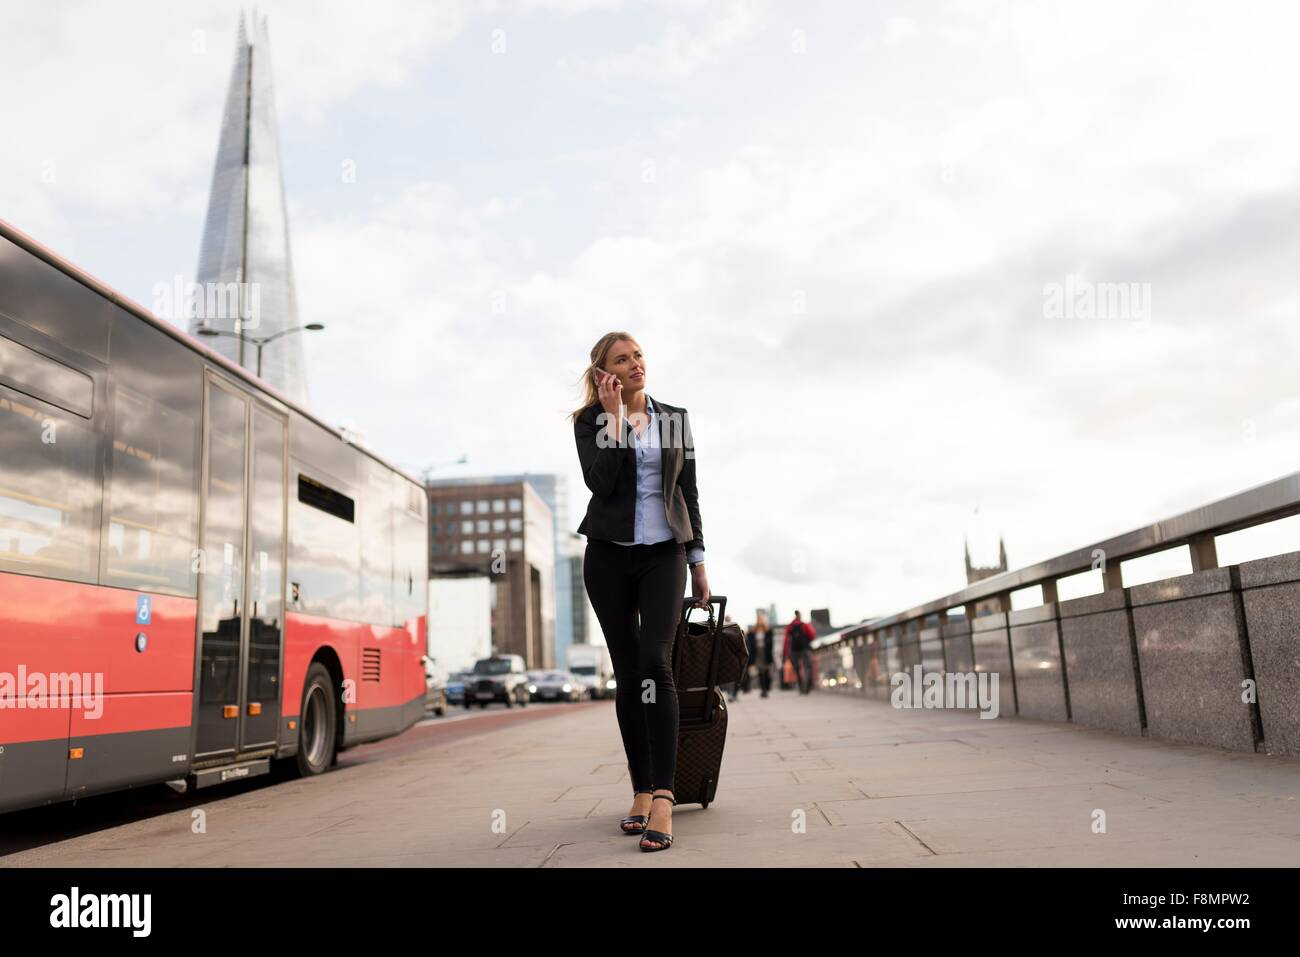 Businesswoman en voyage d'affaires, Londres, UK Photo Stock